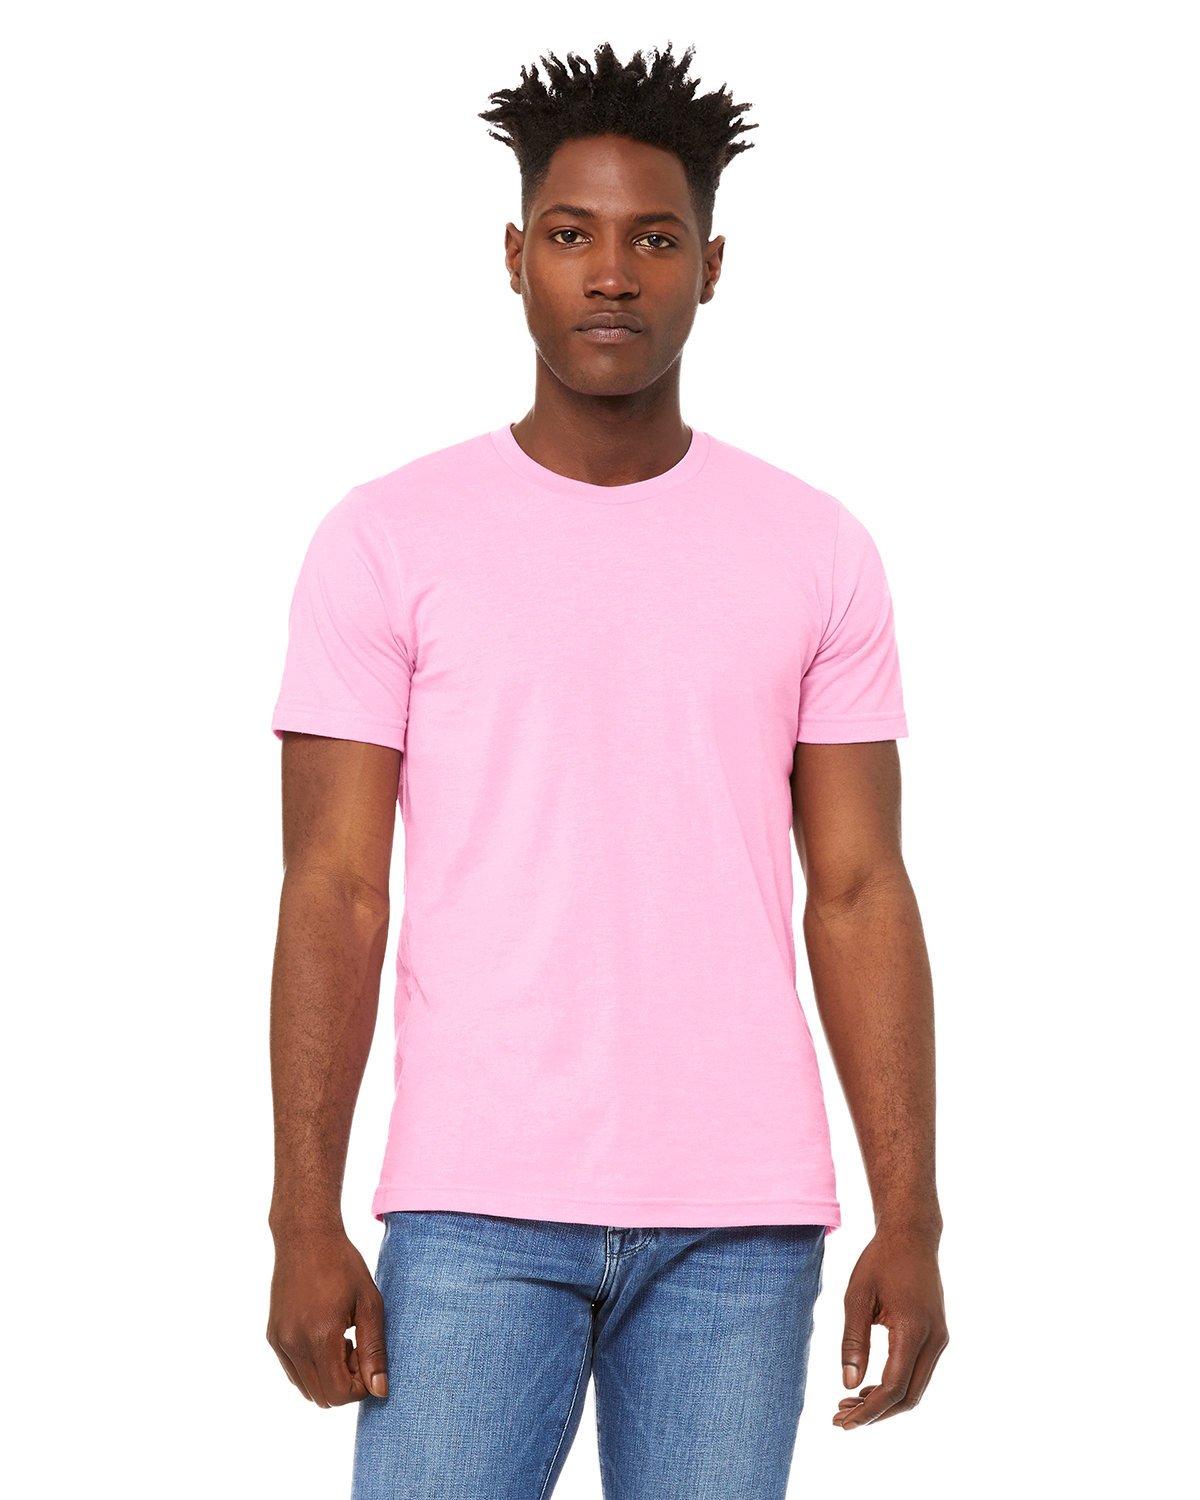 Bella + Canvas Unisex Heather CVC T-Shirt HTHR BUBBLE GUM